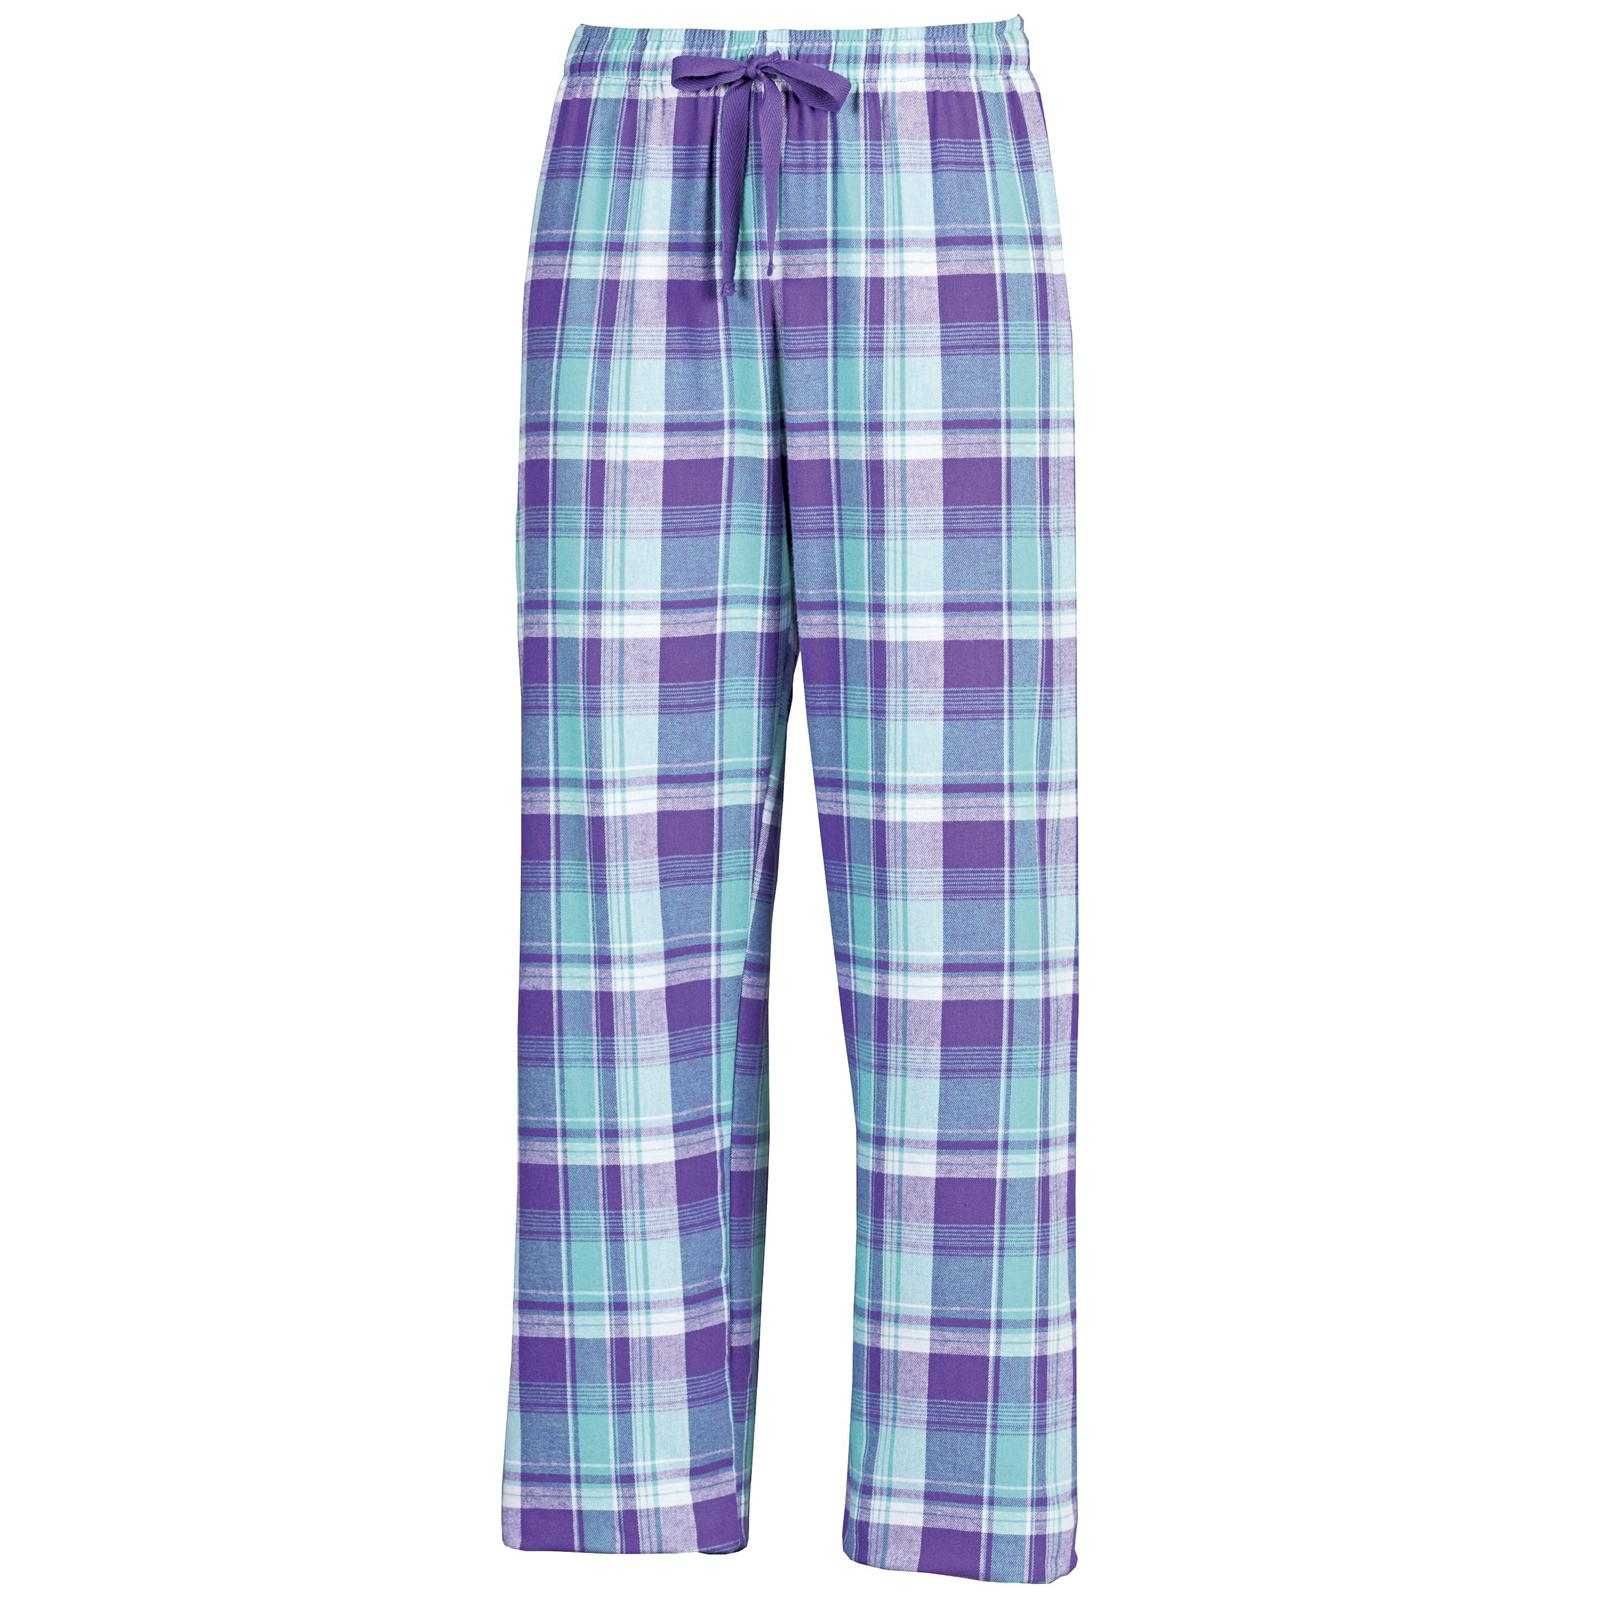 Cool  Form Of Nice Pants Or Trousers Were Asian Inspired Lounge Pants Or Beach Pajamas That Were Especially Popular In 1930s Today Many Women Who Dont Like To Wear Dresses Wear 1920s Style Pants For Their Costumes They Can Be